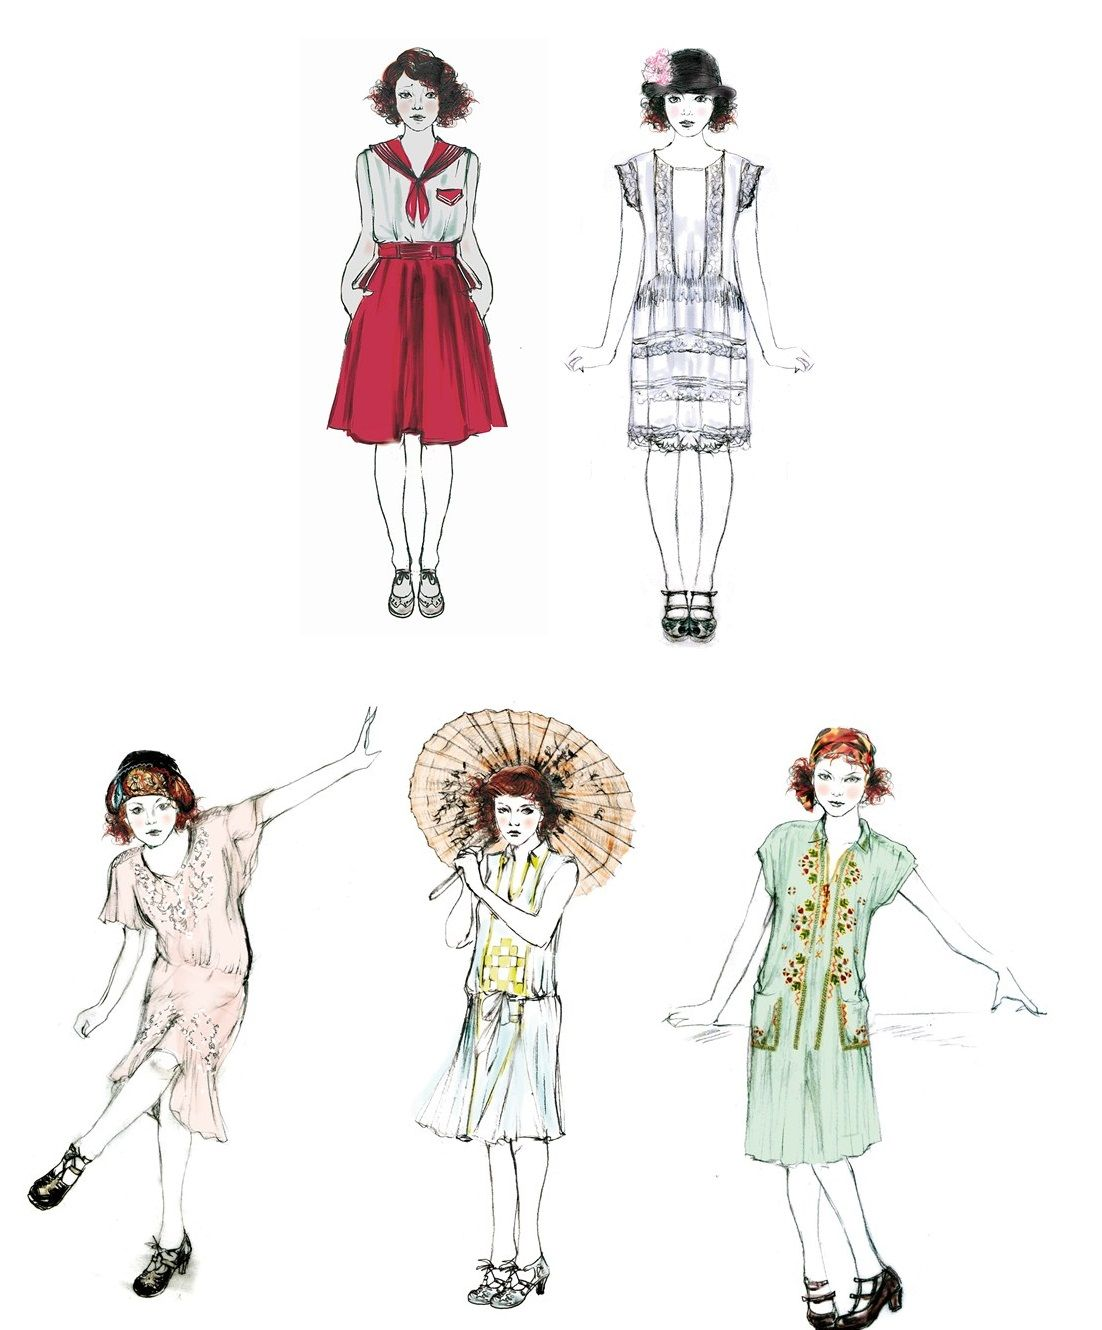 Sonia Grande's sketches for Emma Stone's Magic in the Moonlight costumes